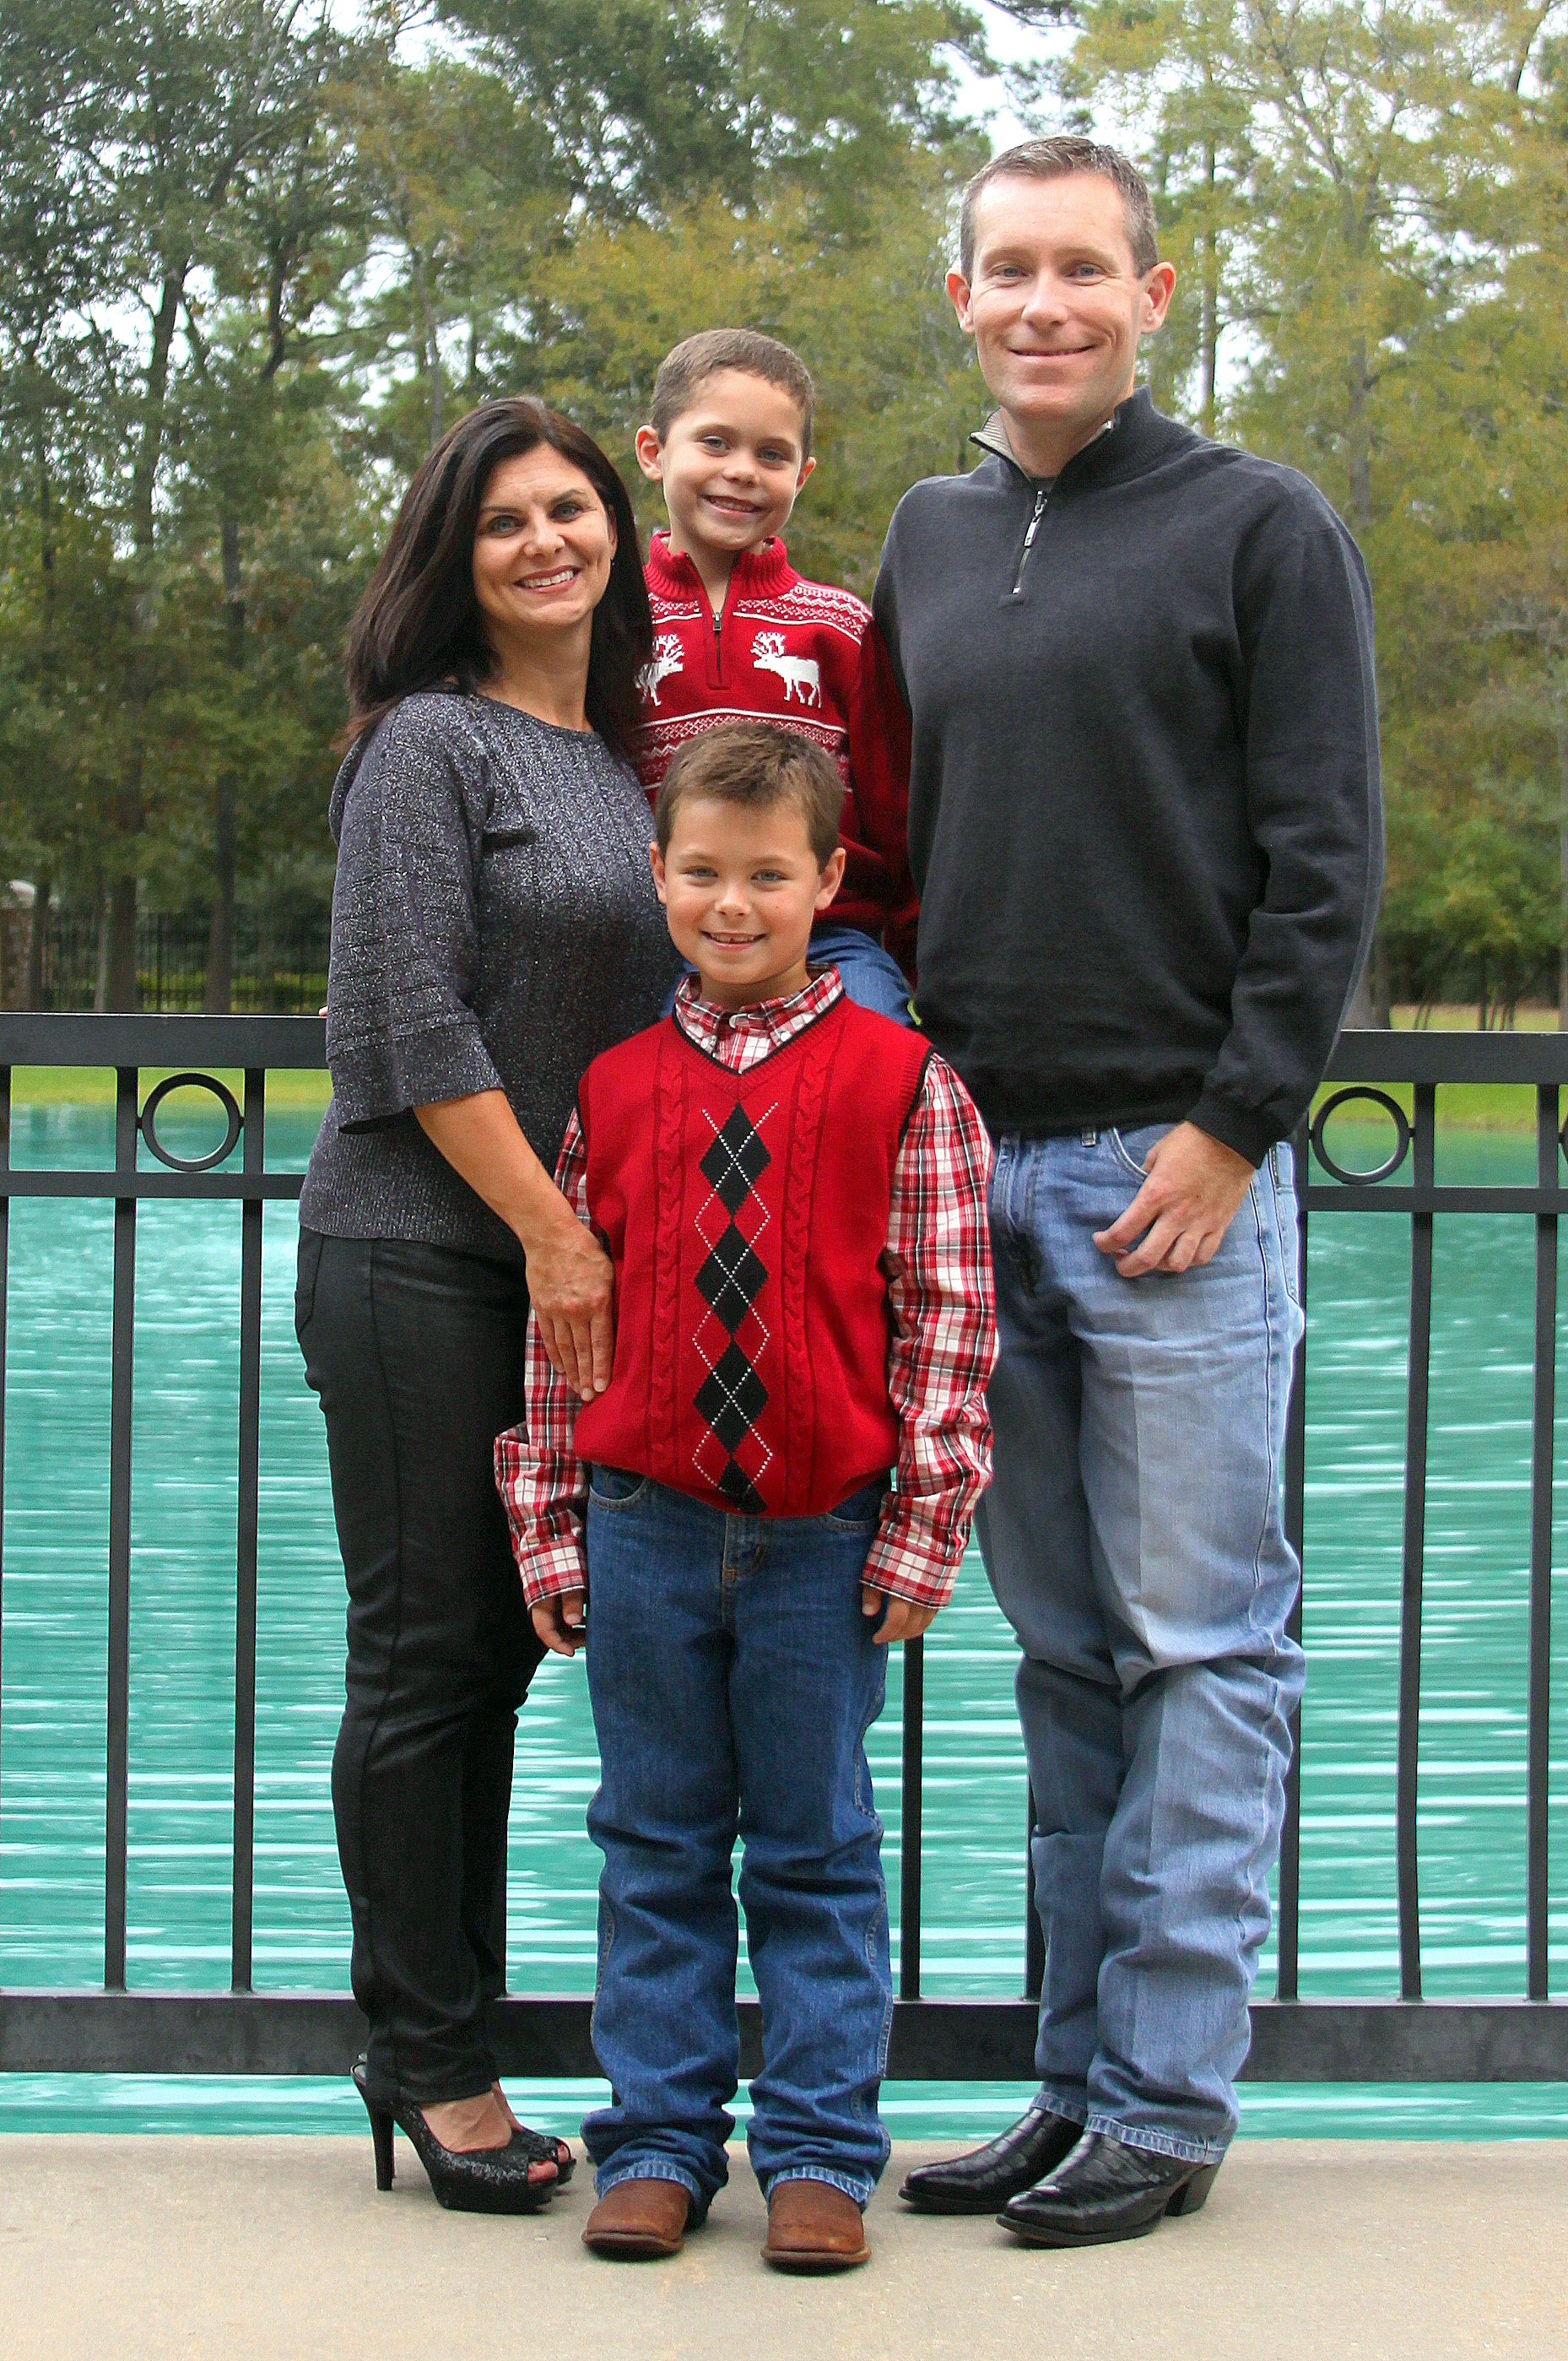 The Painter Family